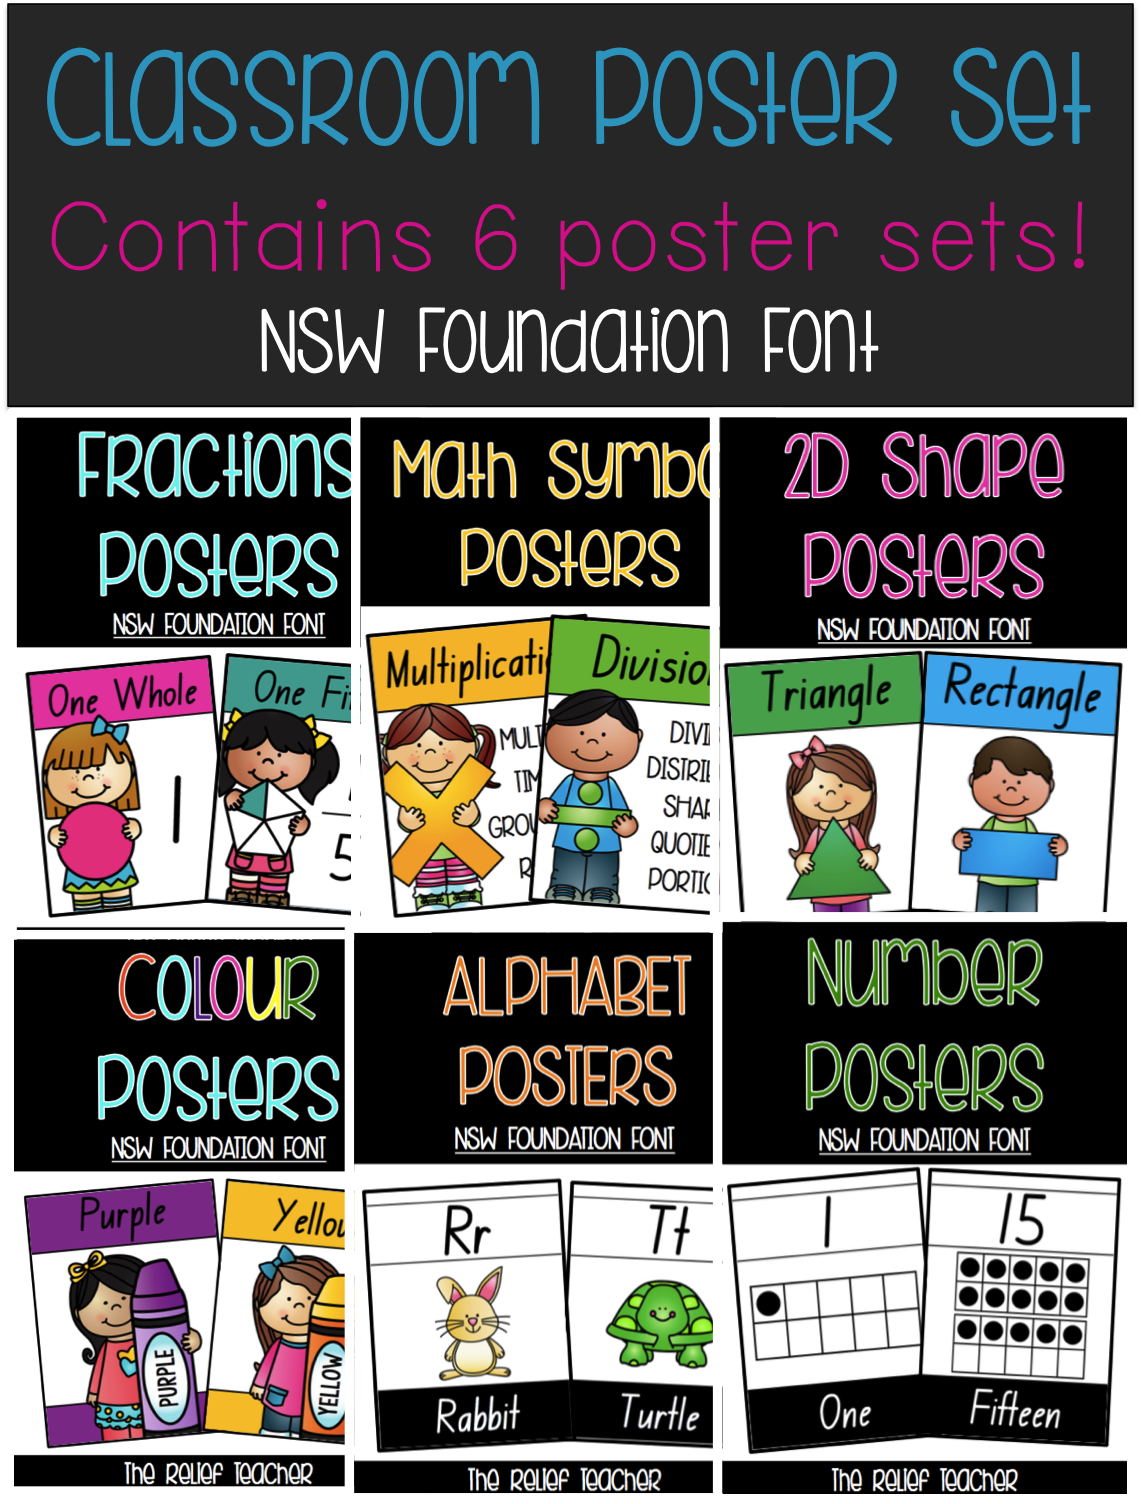 Classroom Poster Pack Contains 6 Poster Sets